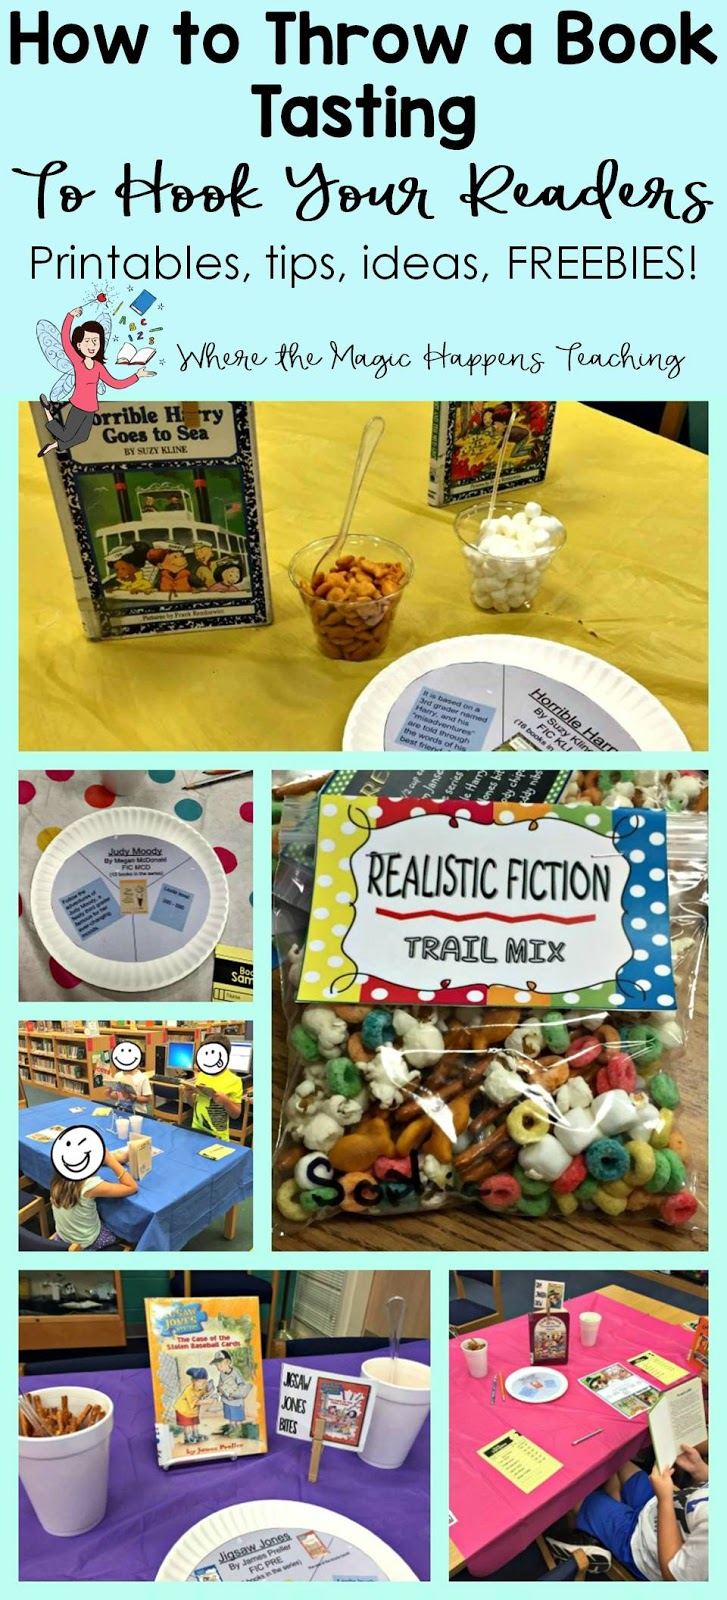 How To Throw A Book Tasting For 2Nd Graders - Where The